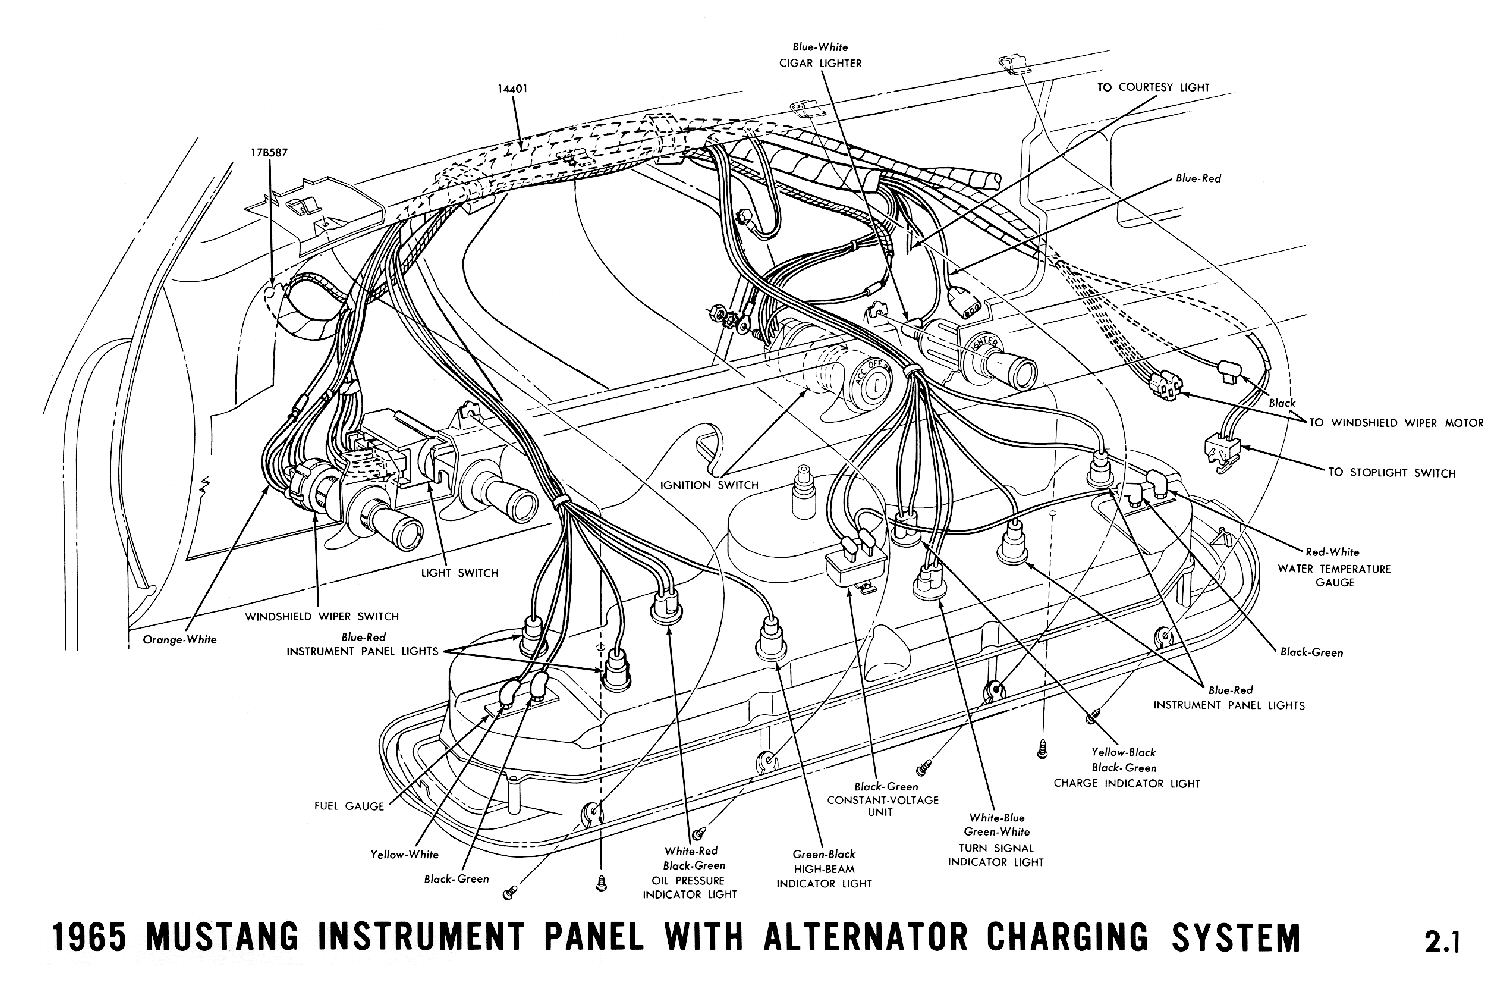 1965a 1965 mustang wiring diagrams average joe restoration mustang wiring harness at reclaimingppi.co